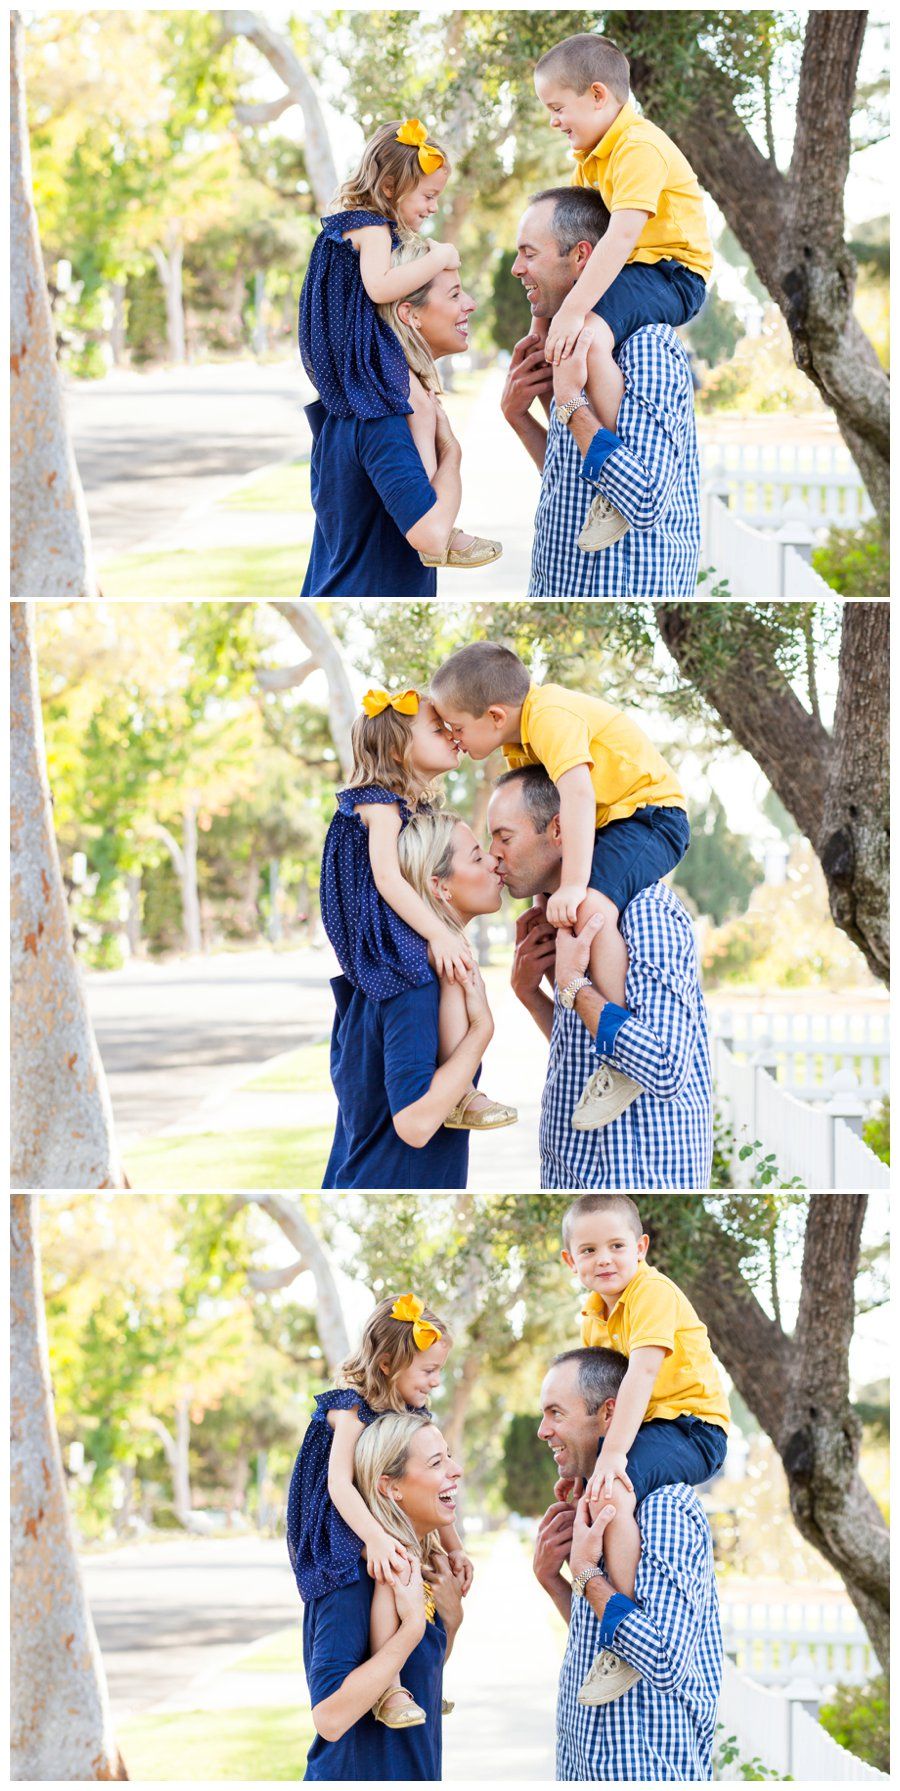 Silly family photography outdoors by Just Maggie Photography -- Los Angeles Family Photographer